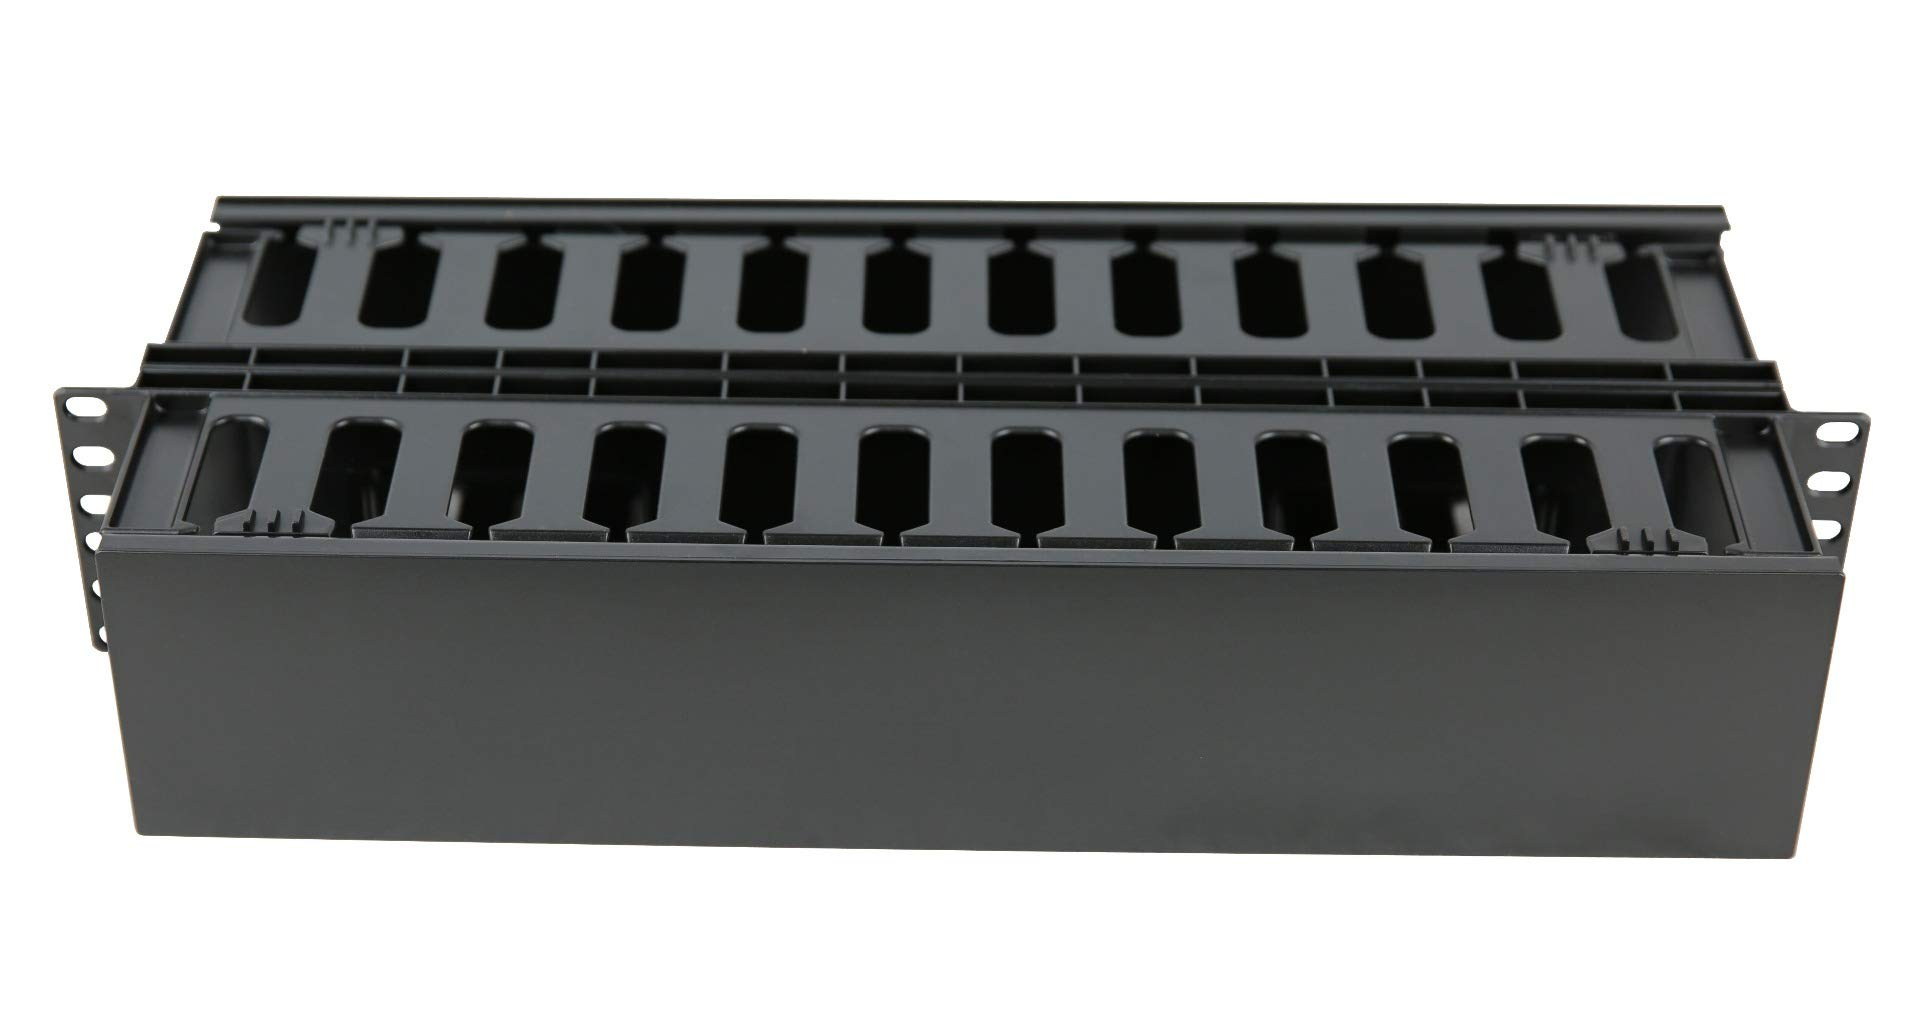 2U Horizontal Double Sided Finger Duct Cable Manager 19'' Rack Mount by Raising Electronics (Image #2)